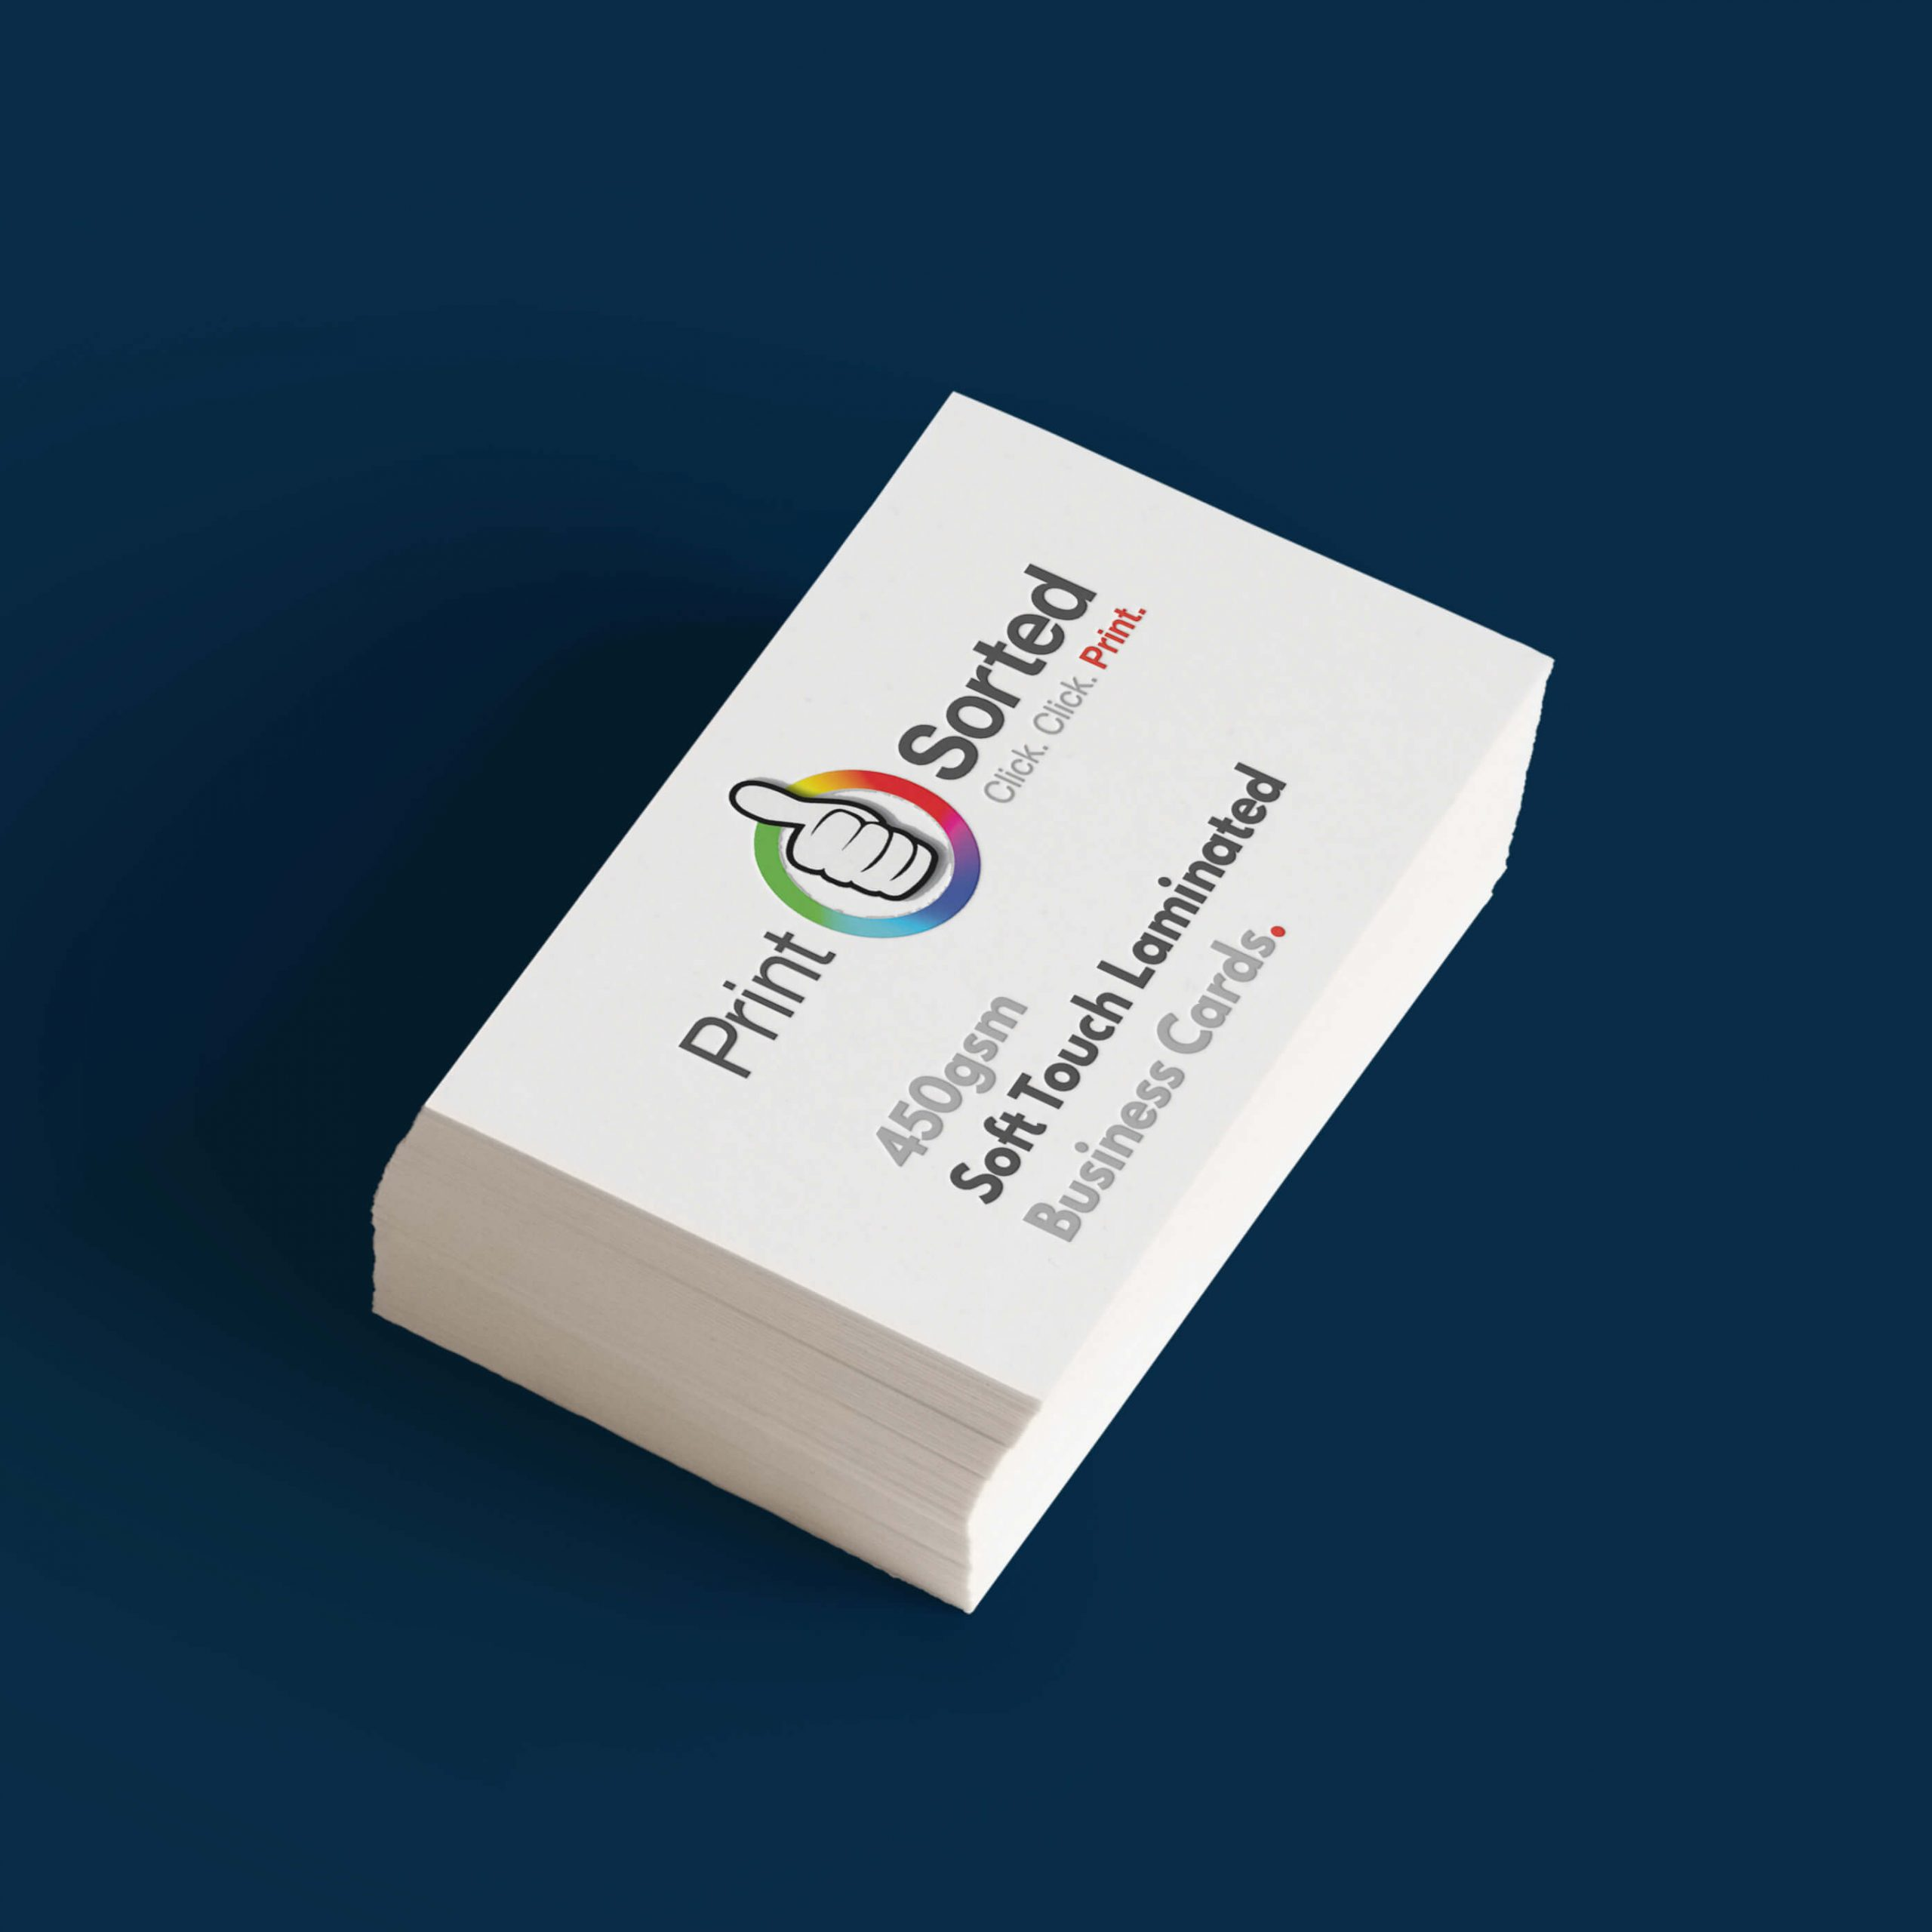 450gsm Soft Touch Laminated Business Cards by printsorted